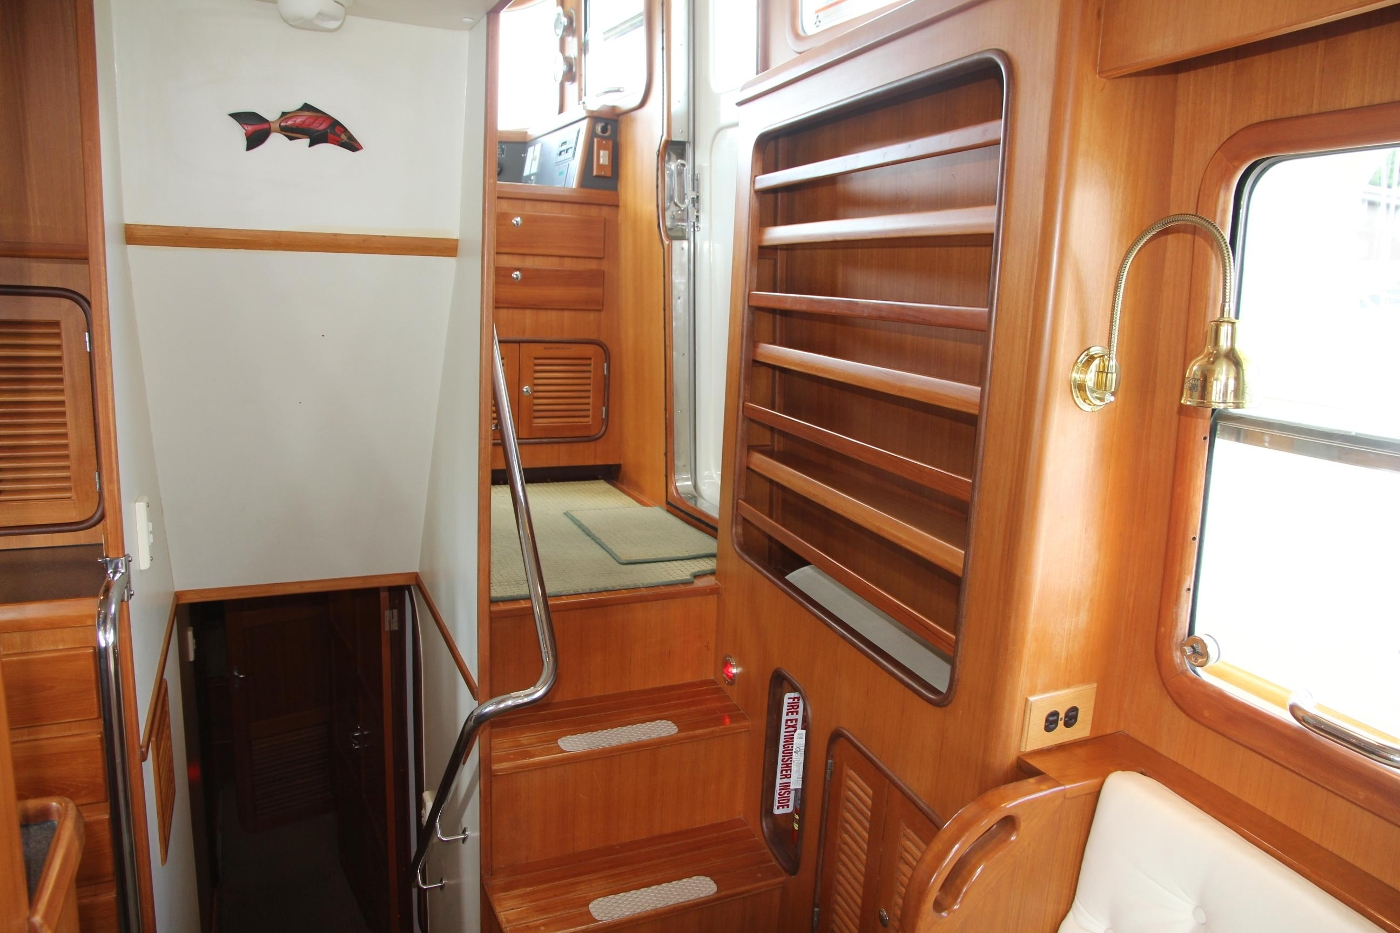 2000 Nordhavn Pilothouse, Compainway and Storage